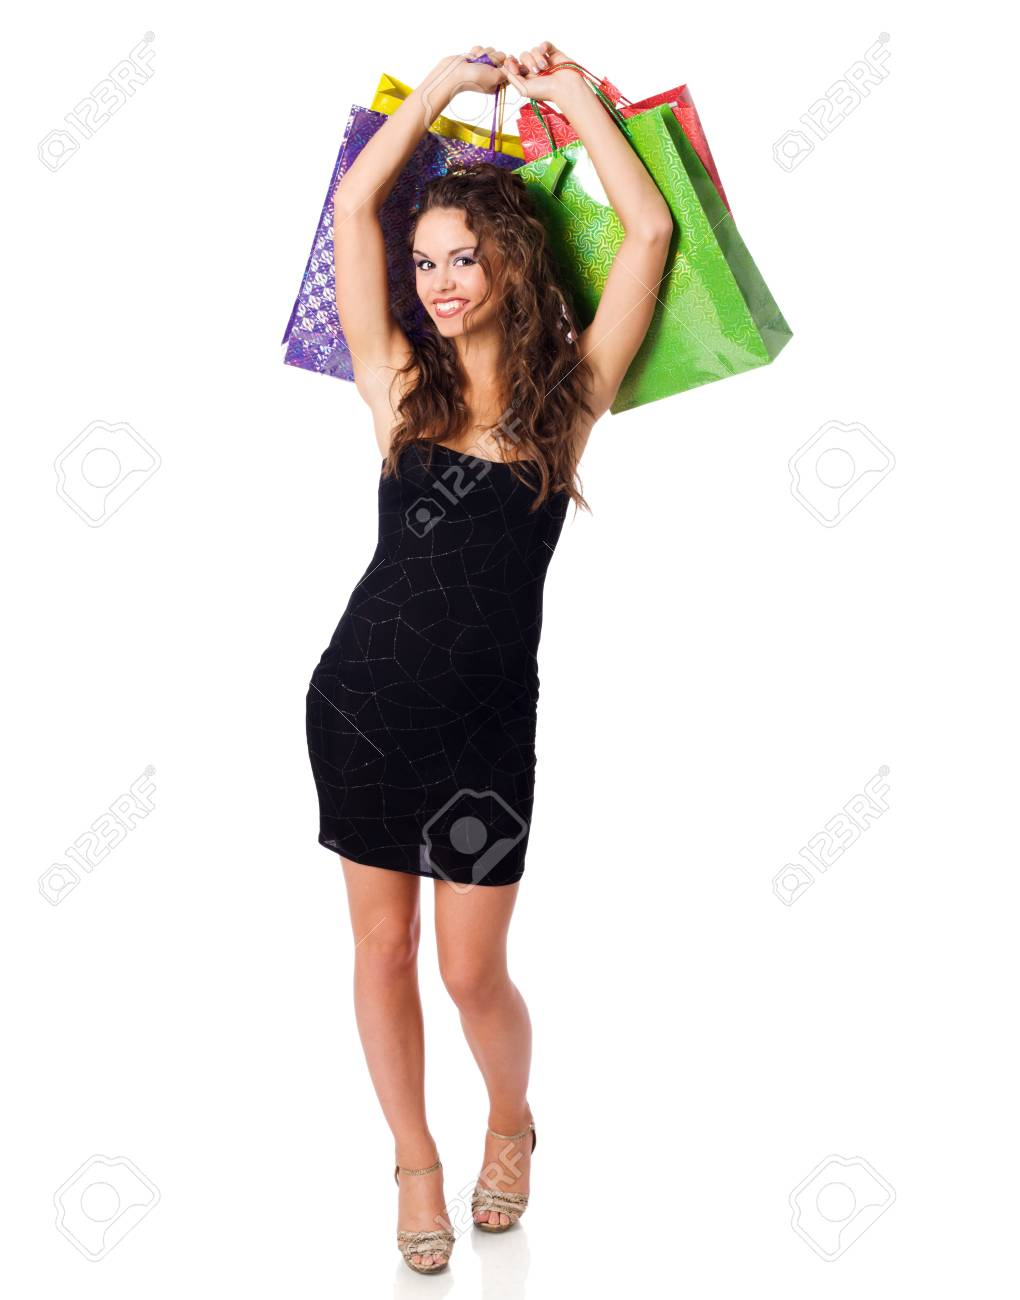 Young Woman shopping holding bags isolated on white Stock Photo - 8252410